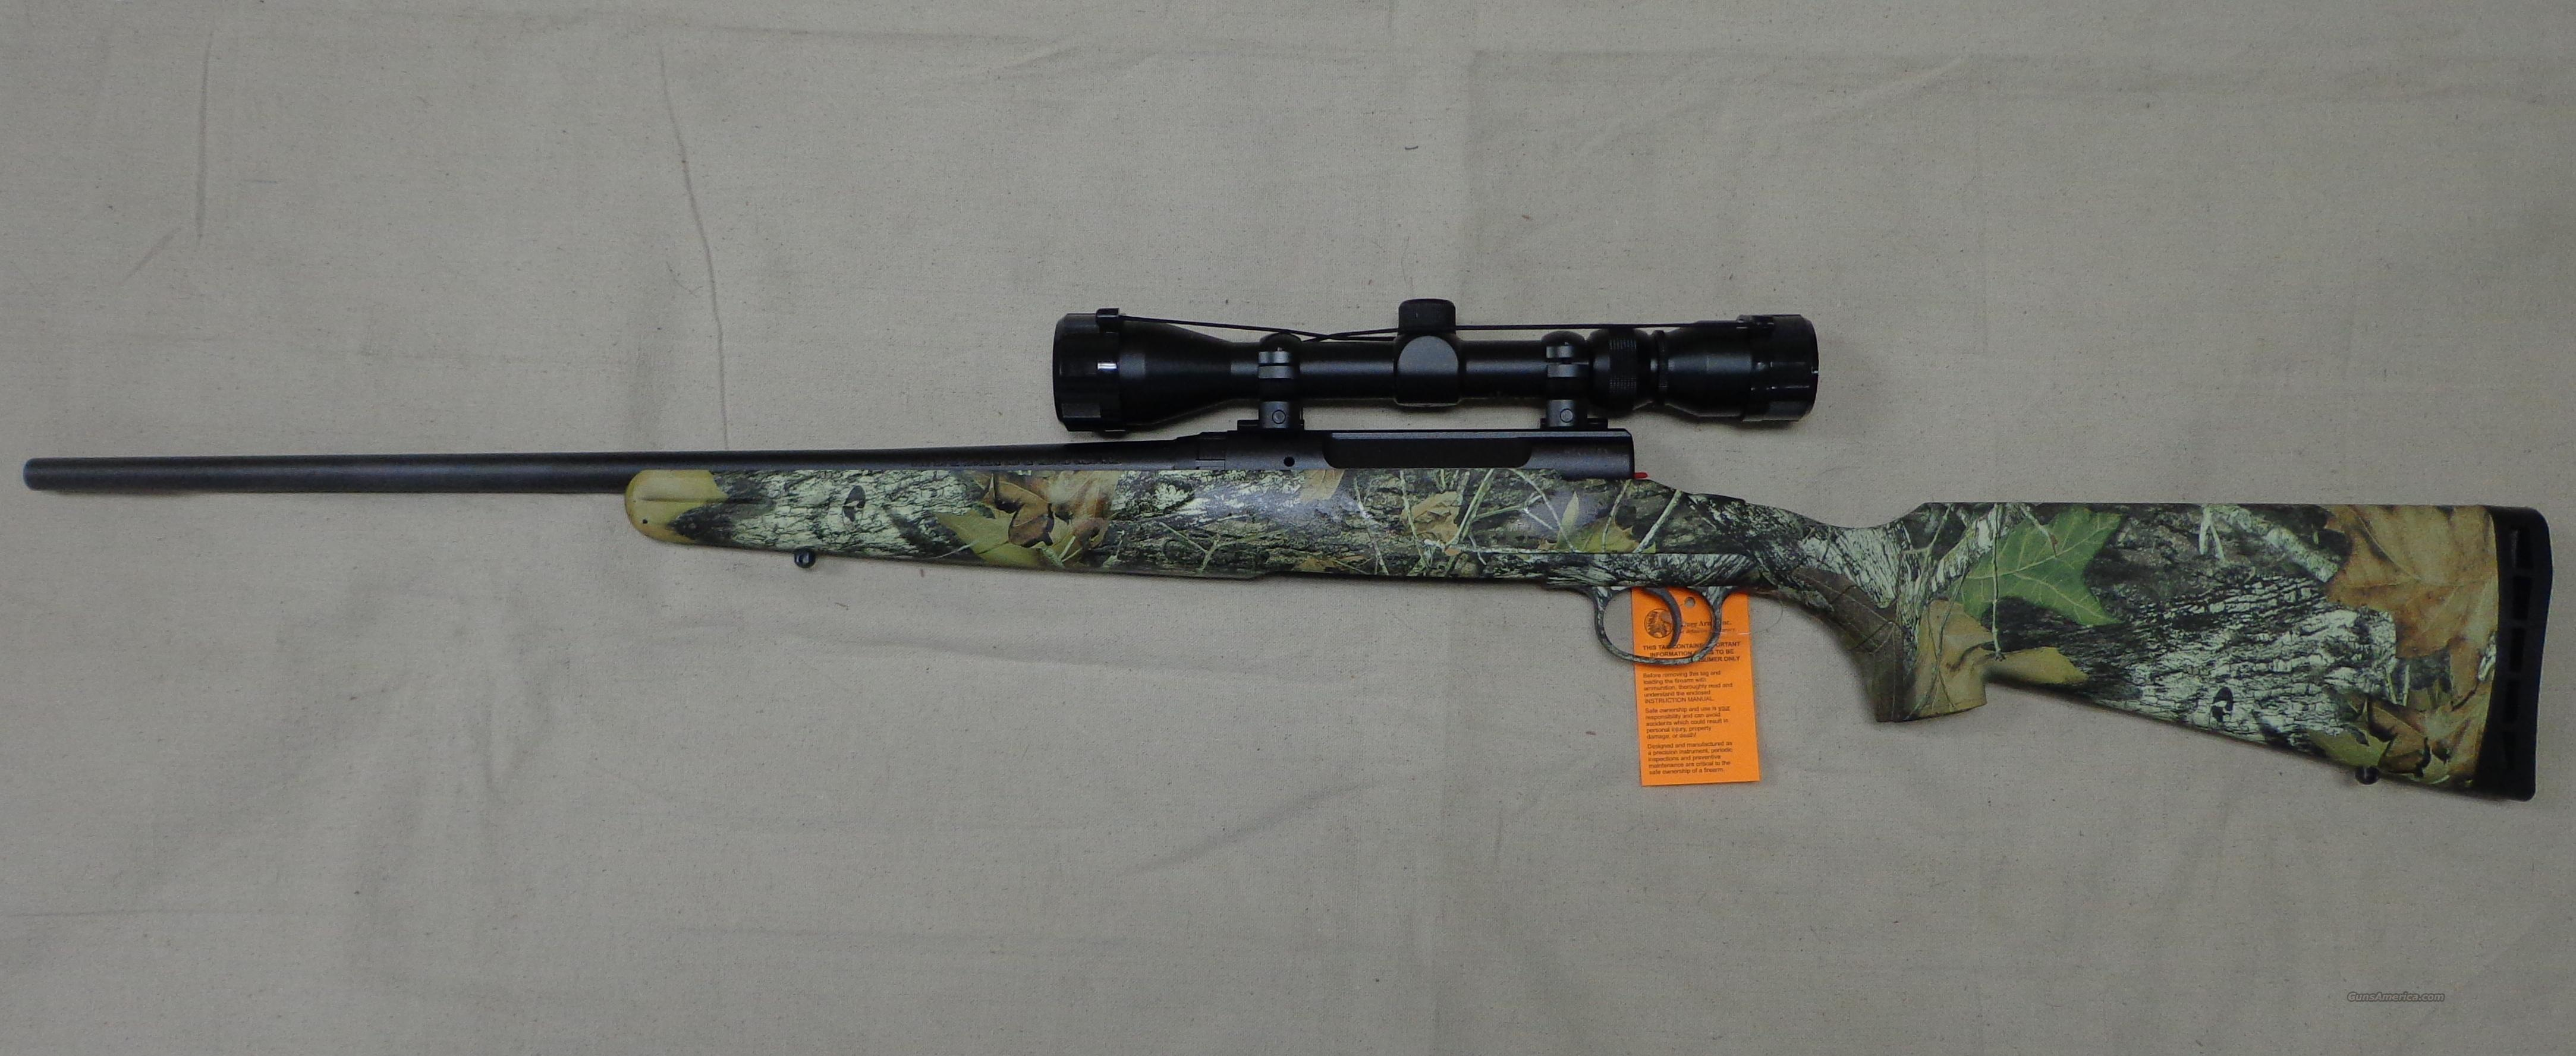 Savage Axis HP 270 - Camo Package  Guns > Rifles > Savage Rifles > Standard Bolt Action > Sporting